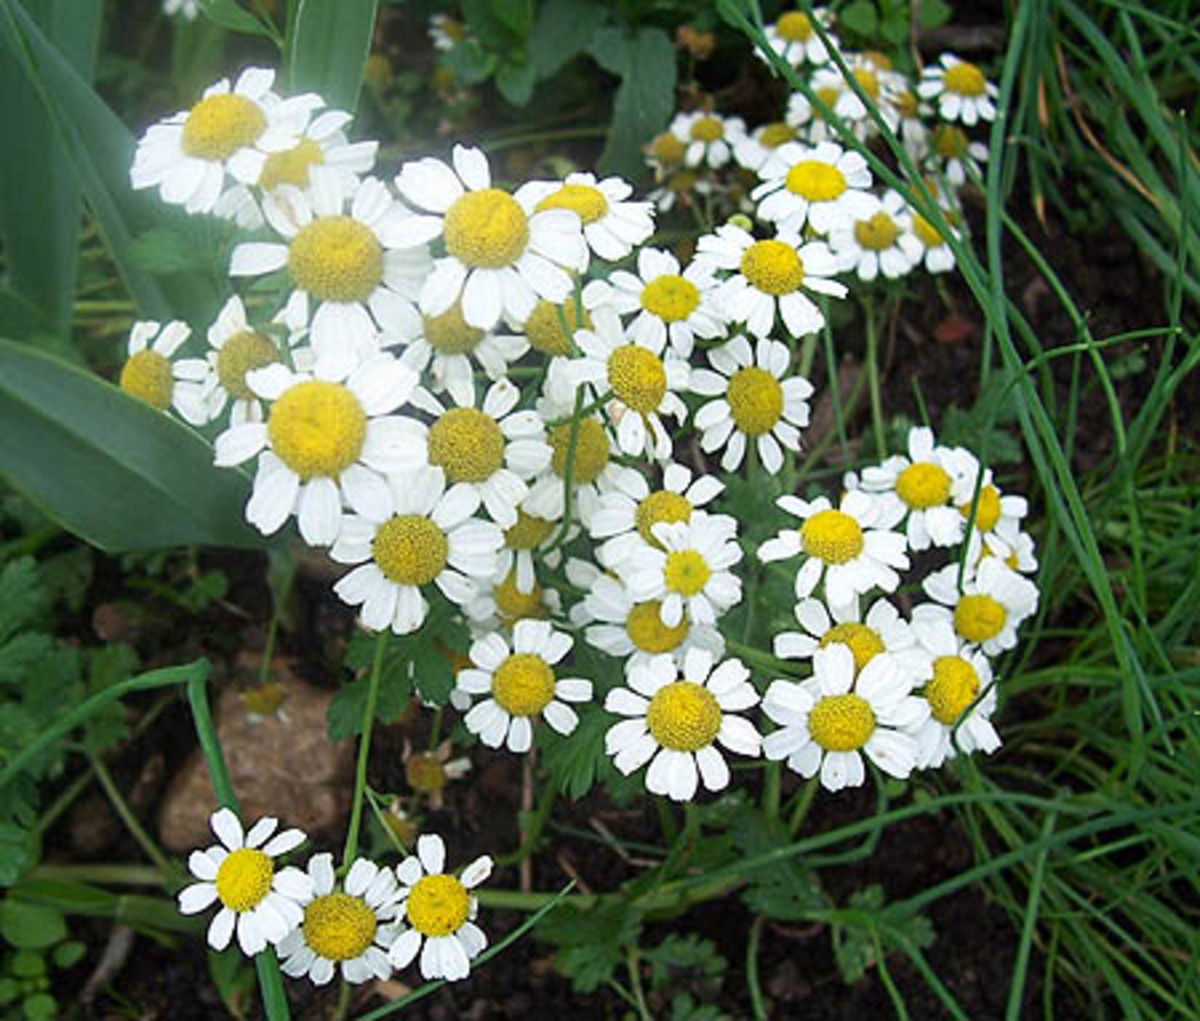 Chamomile is a safe, useful herb that you should keep in stock.